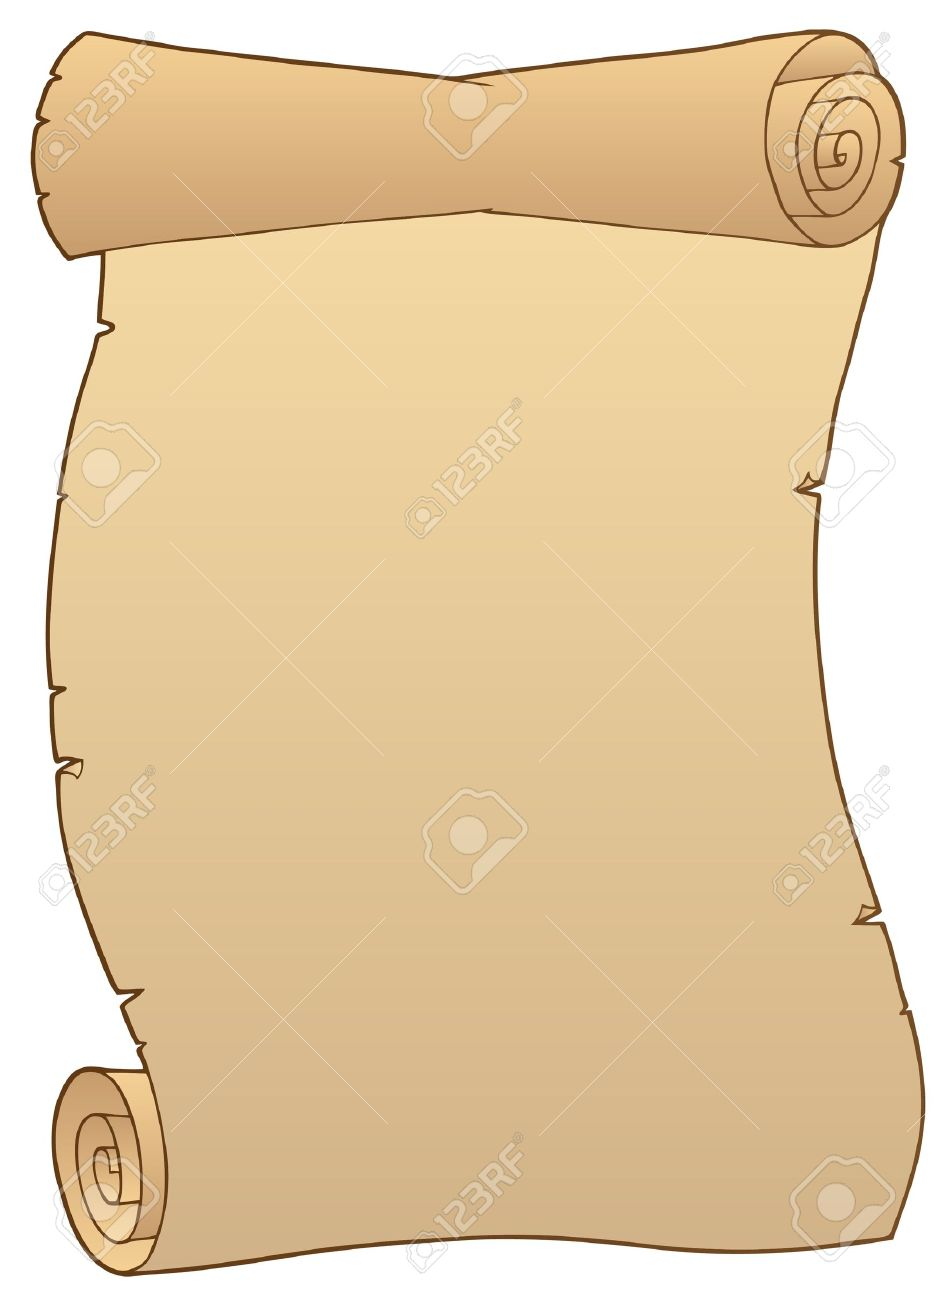 Scroll Drawing Template At Getdrawings Free For Personal Use